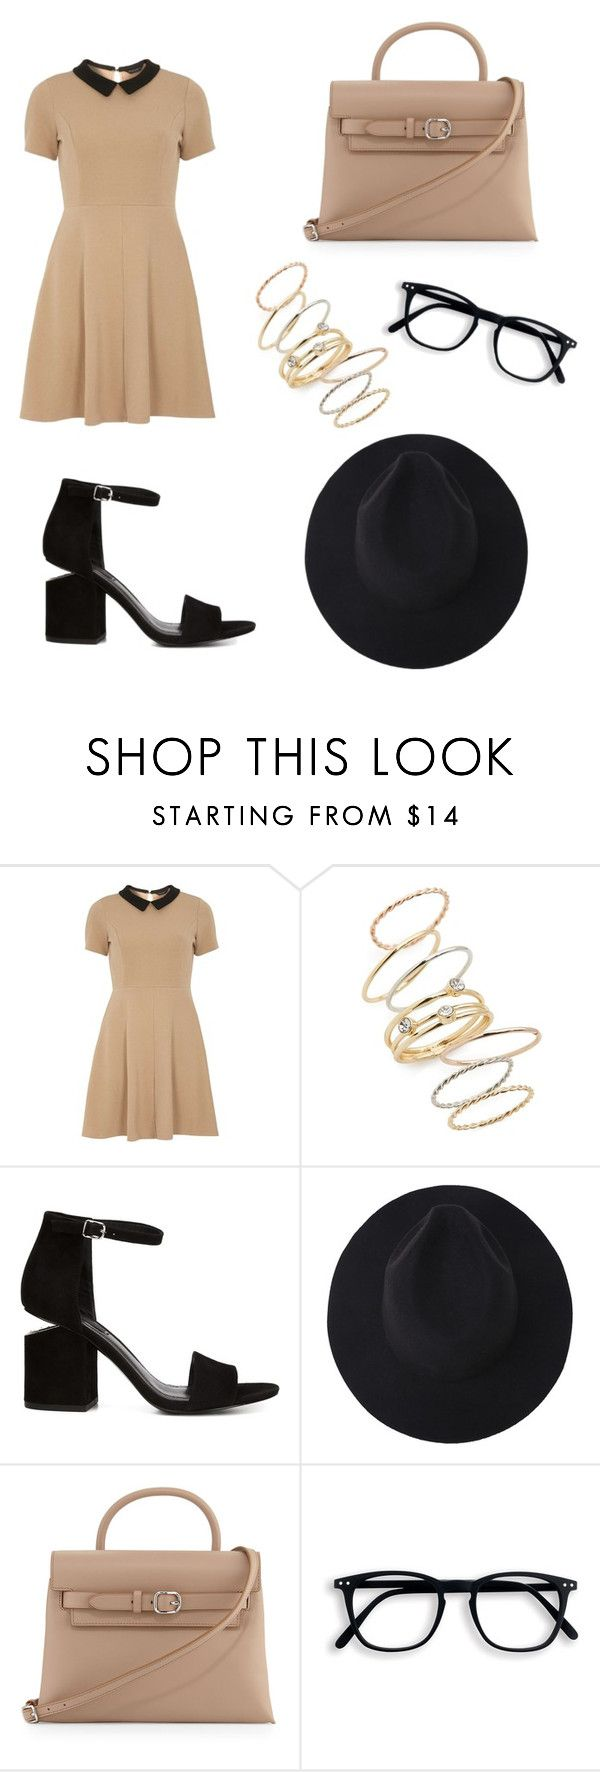 """""""Untitled #467"""" by margaritagarrix ❤ liked on Polyvore featuring mel, BP. and Alexander Wang"""